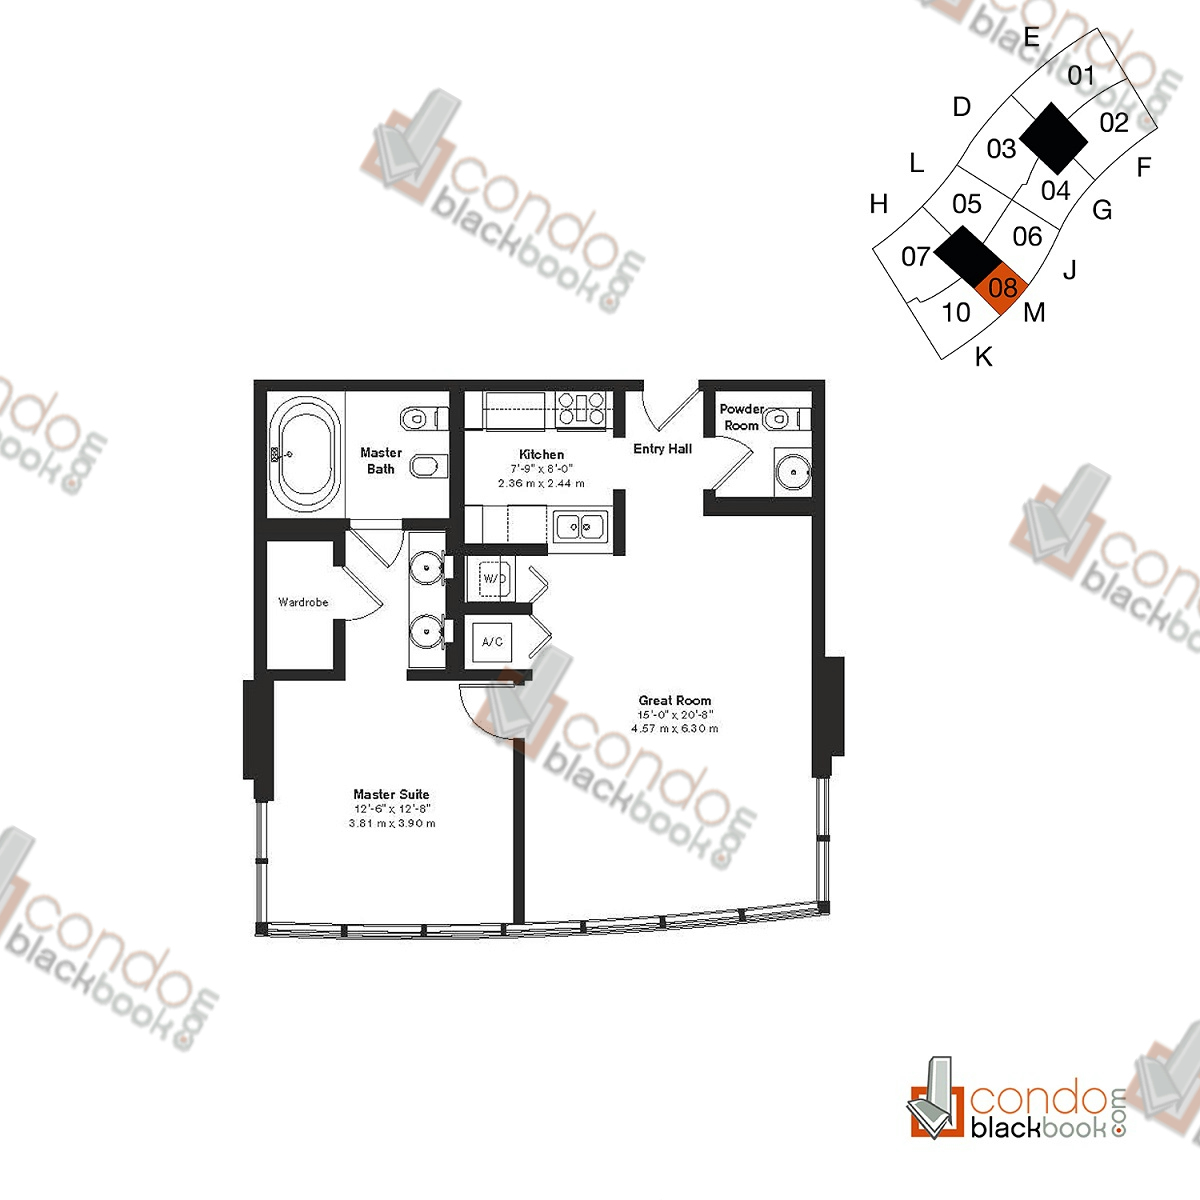 Floor plan for ICON South Beach South Beach Miami Beach, model Residence M, line 08, 1/1.5 bedrooms, 851 sq ft